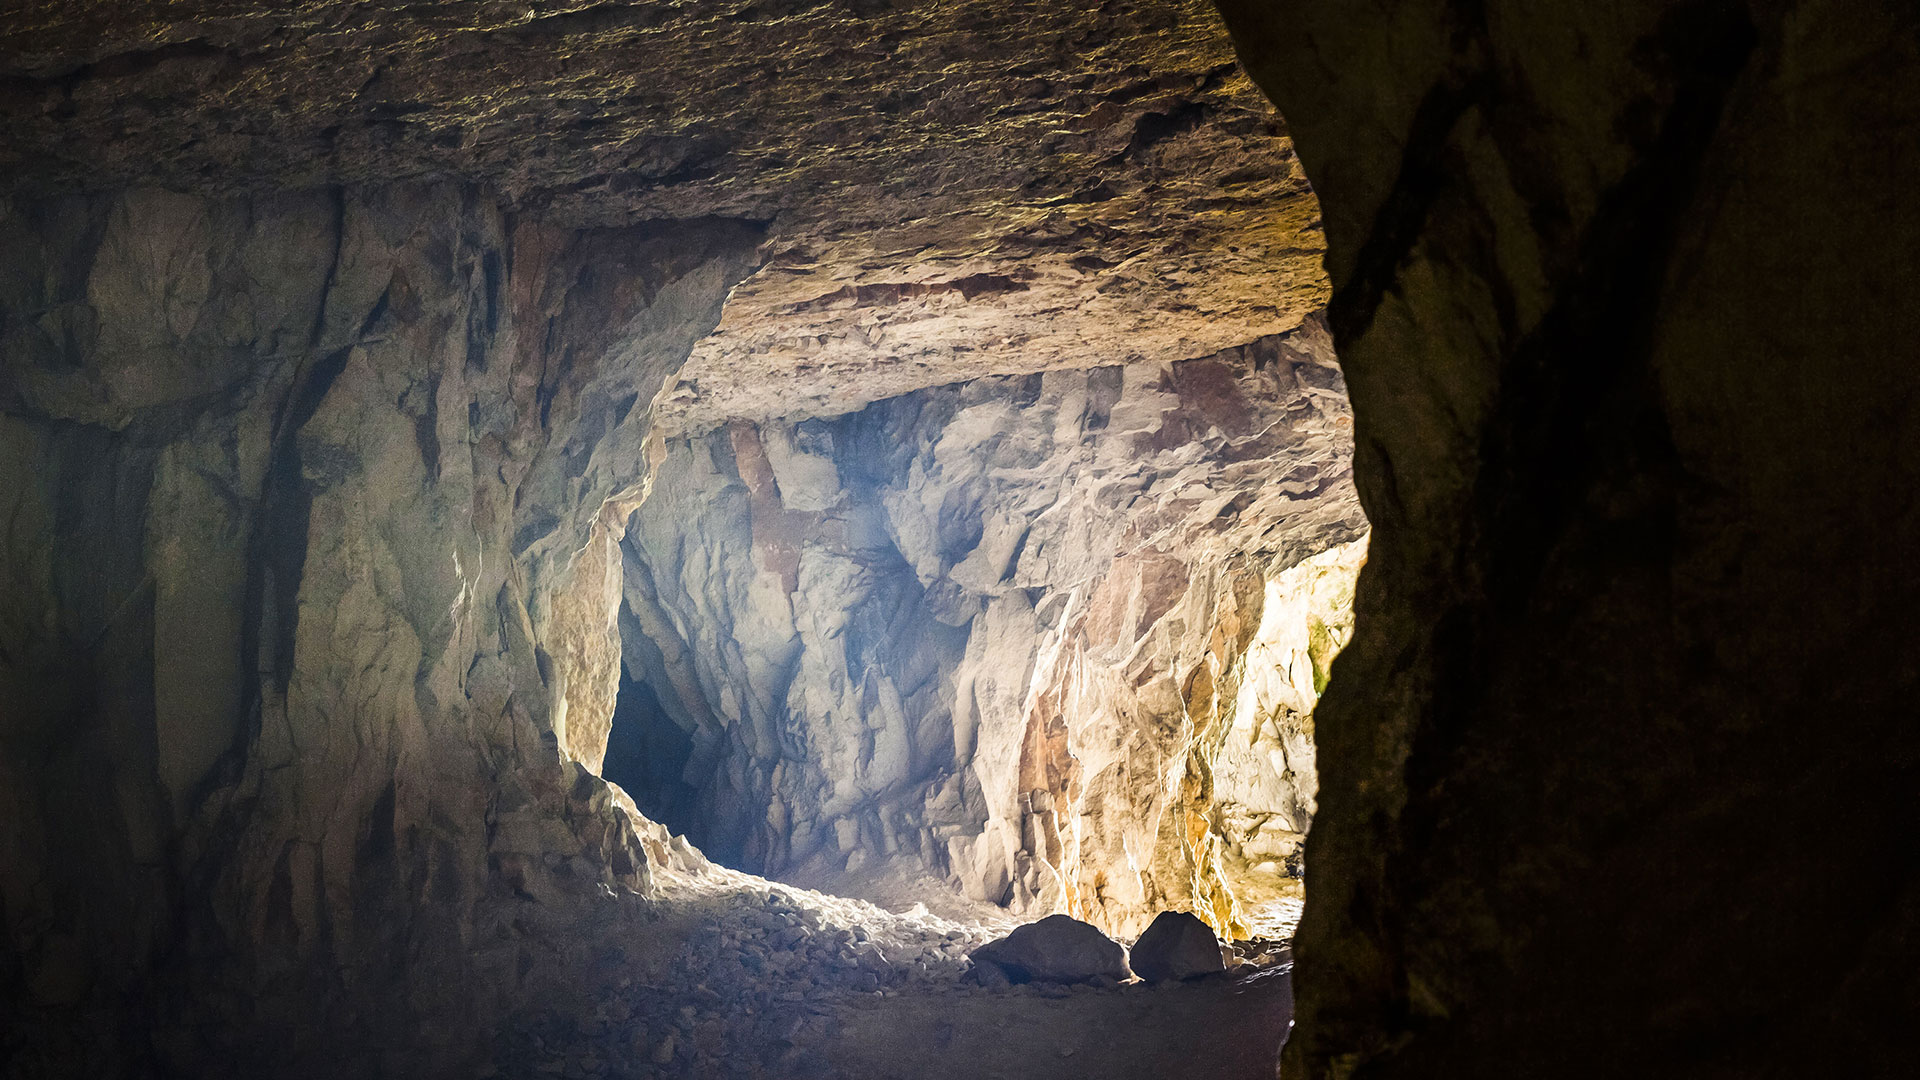 Cave looking toward the light